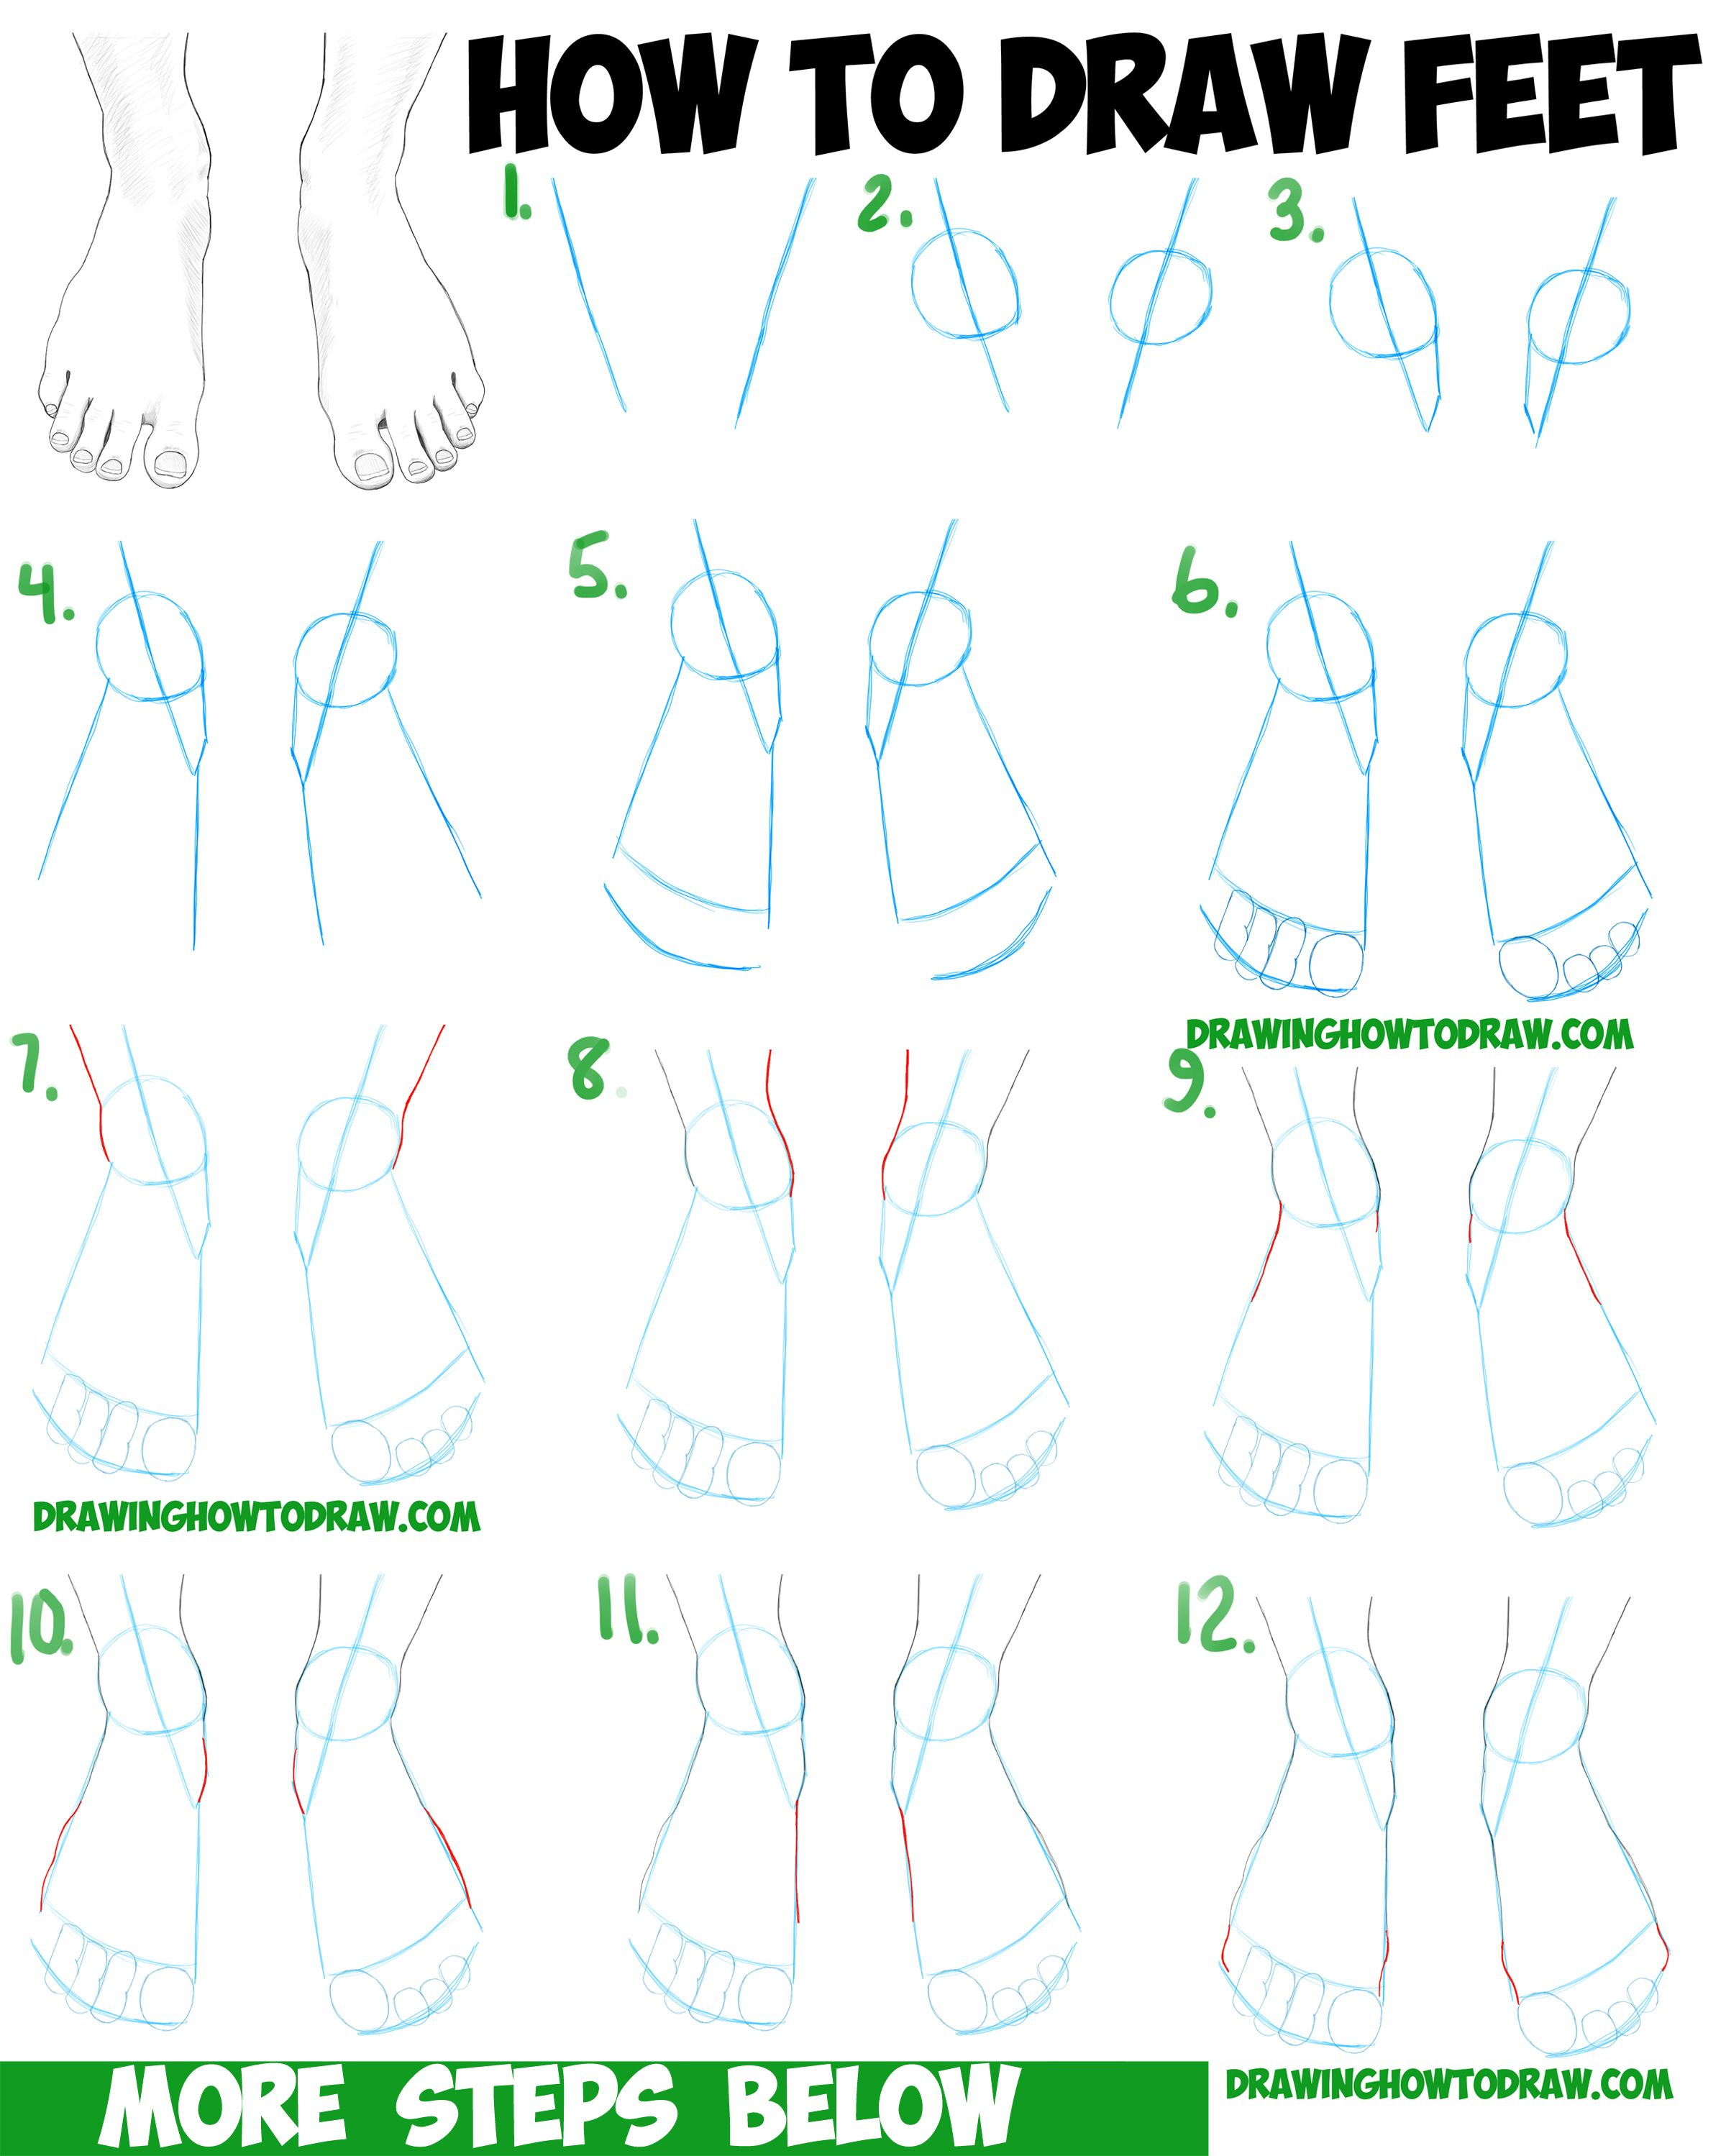 How To Draw Feet The Human Foot With Easy Step By Step Drawing